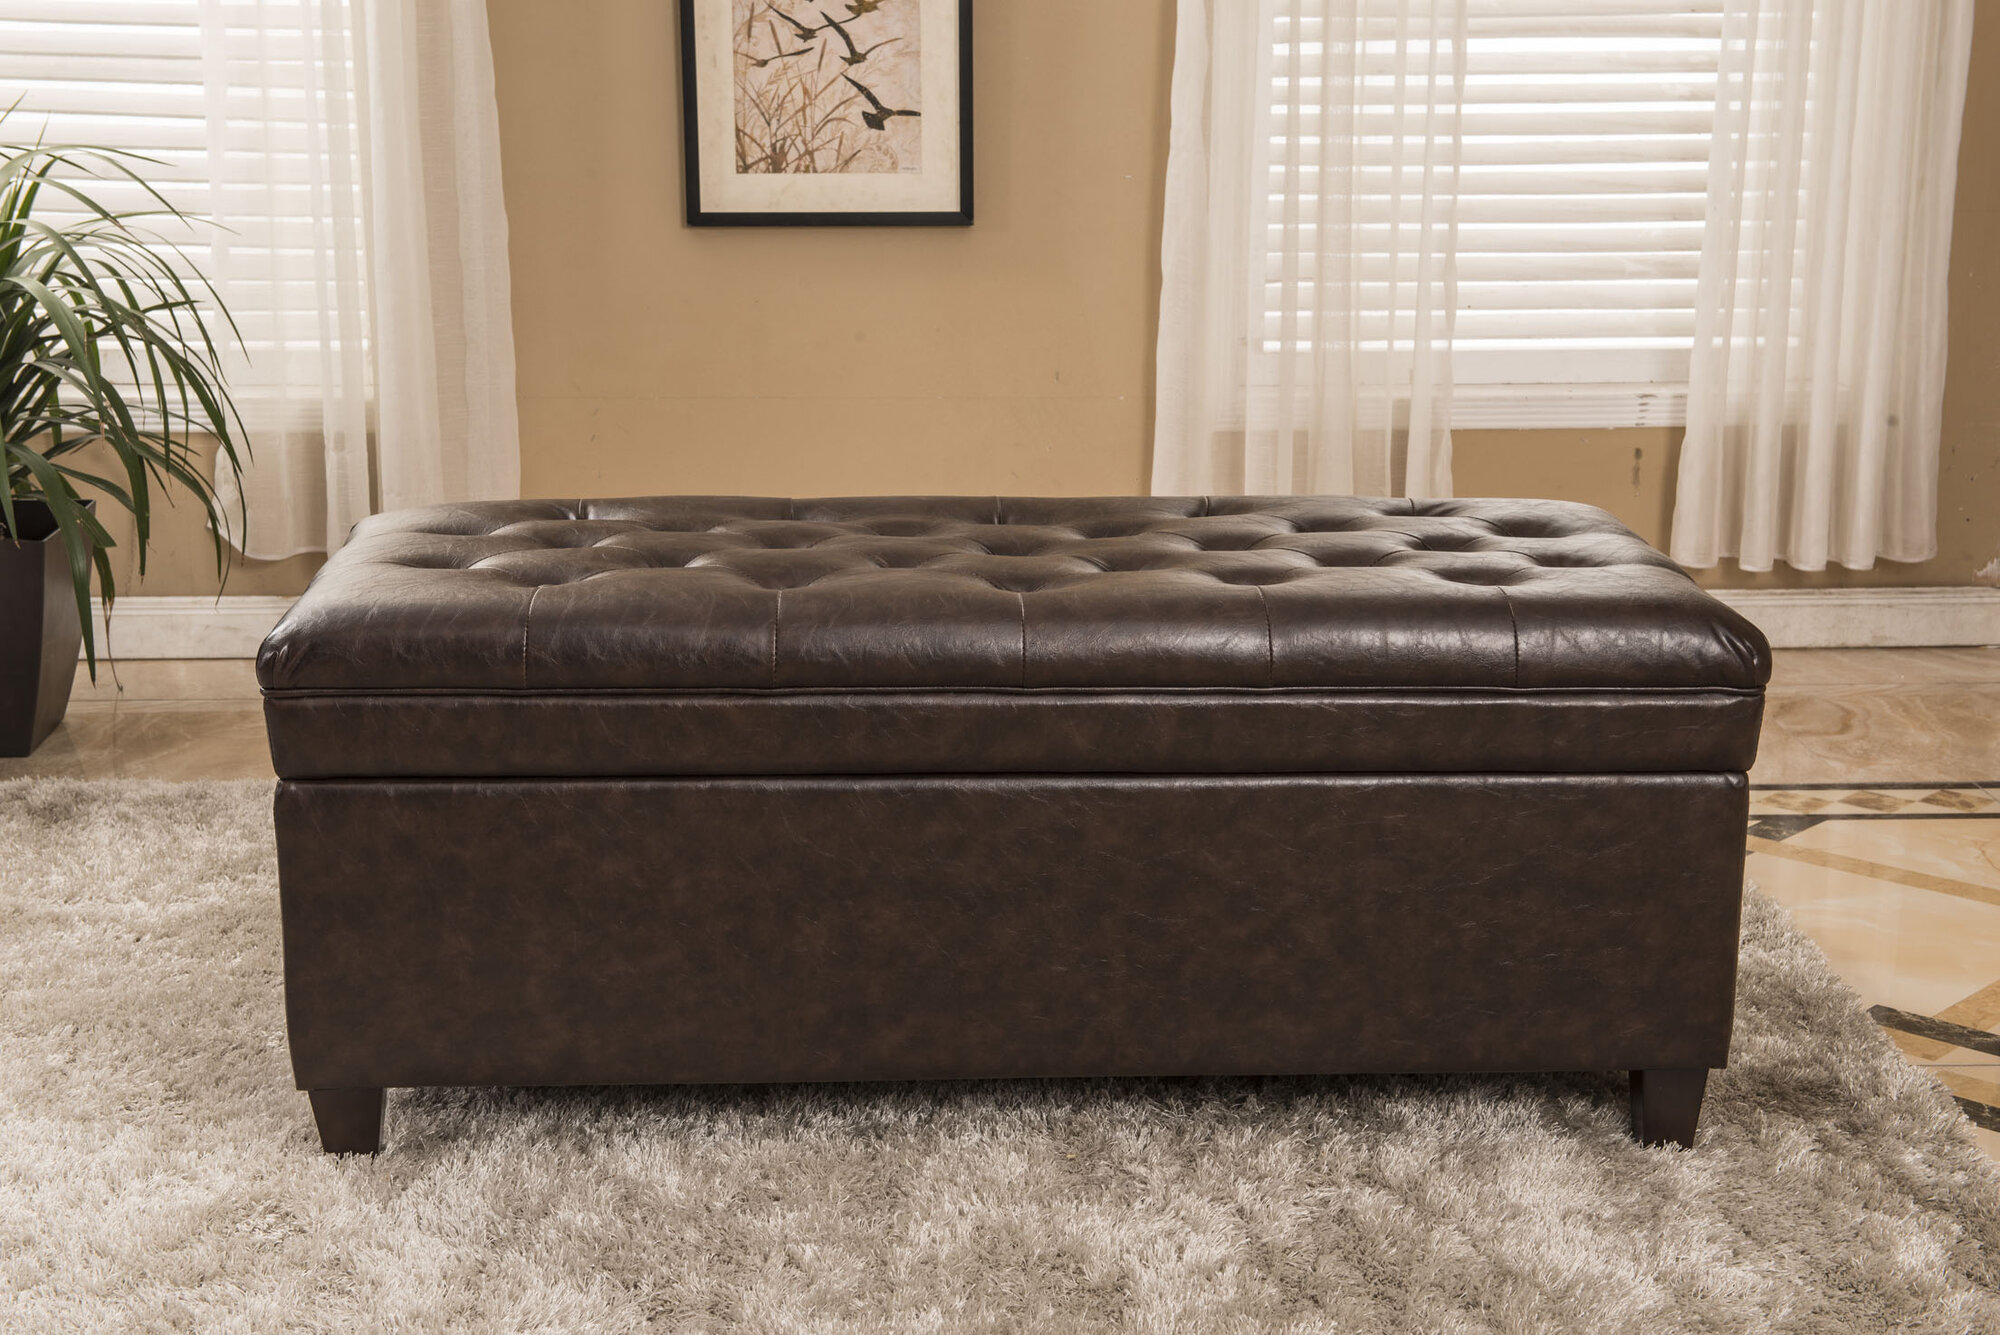 Classic Waxed Texture Dark Tufted Wood Storage Bedroom